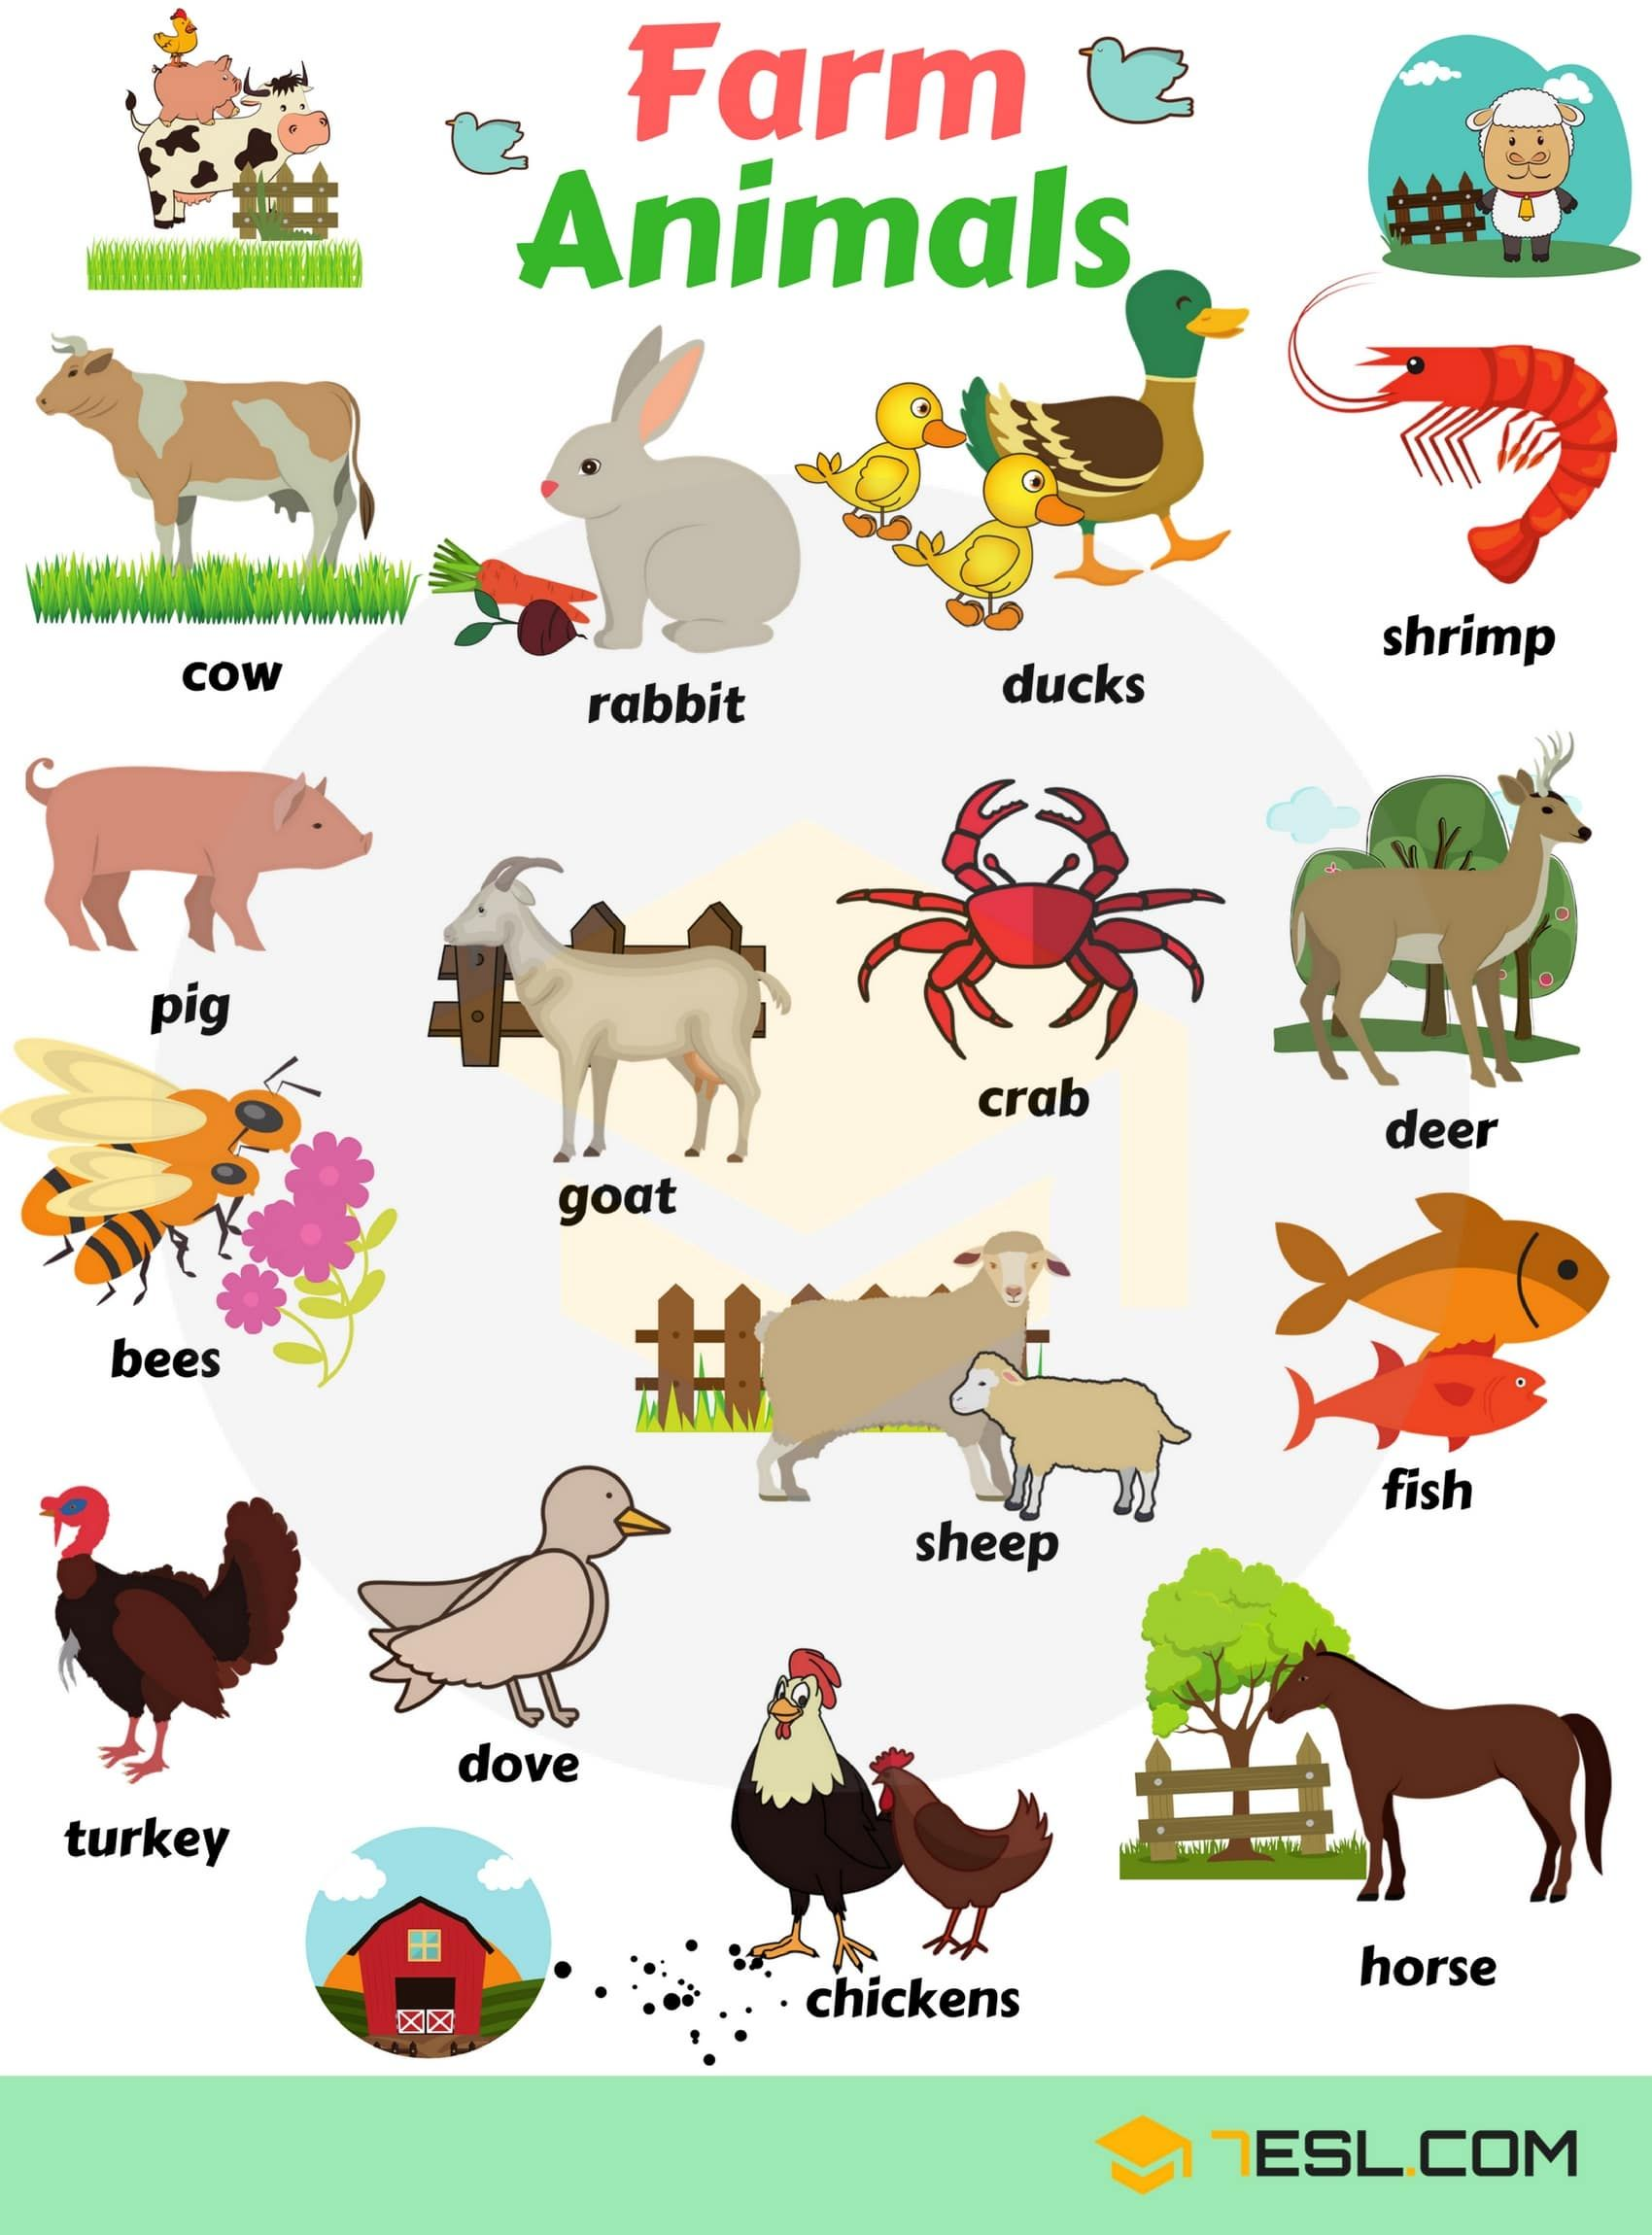 Farm Animals List Domestic Animals Names With Pictures 7 E S L Animals Name In English English Vocabulary Learning English For Kids